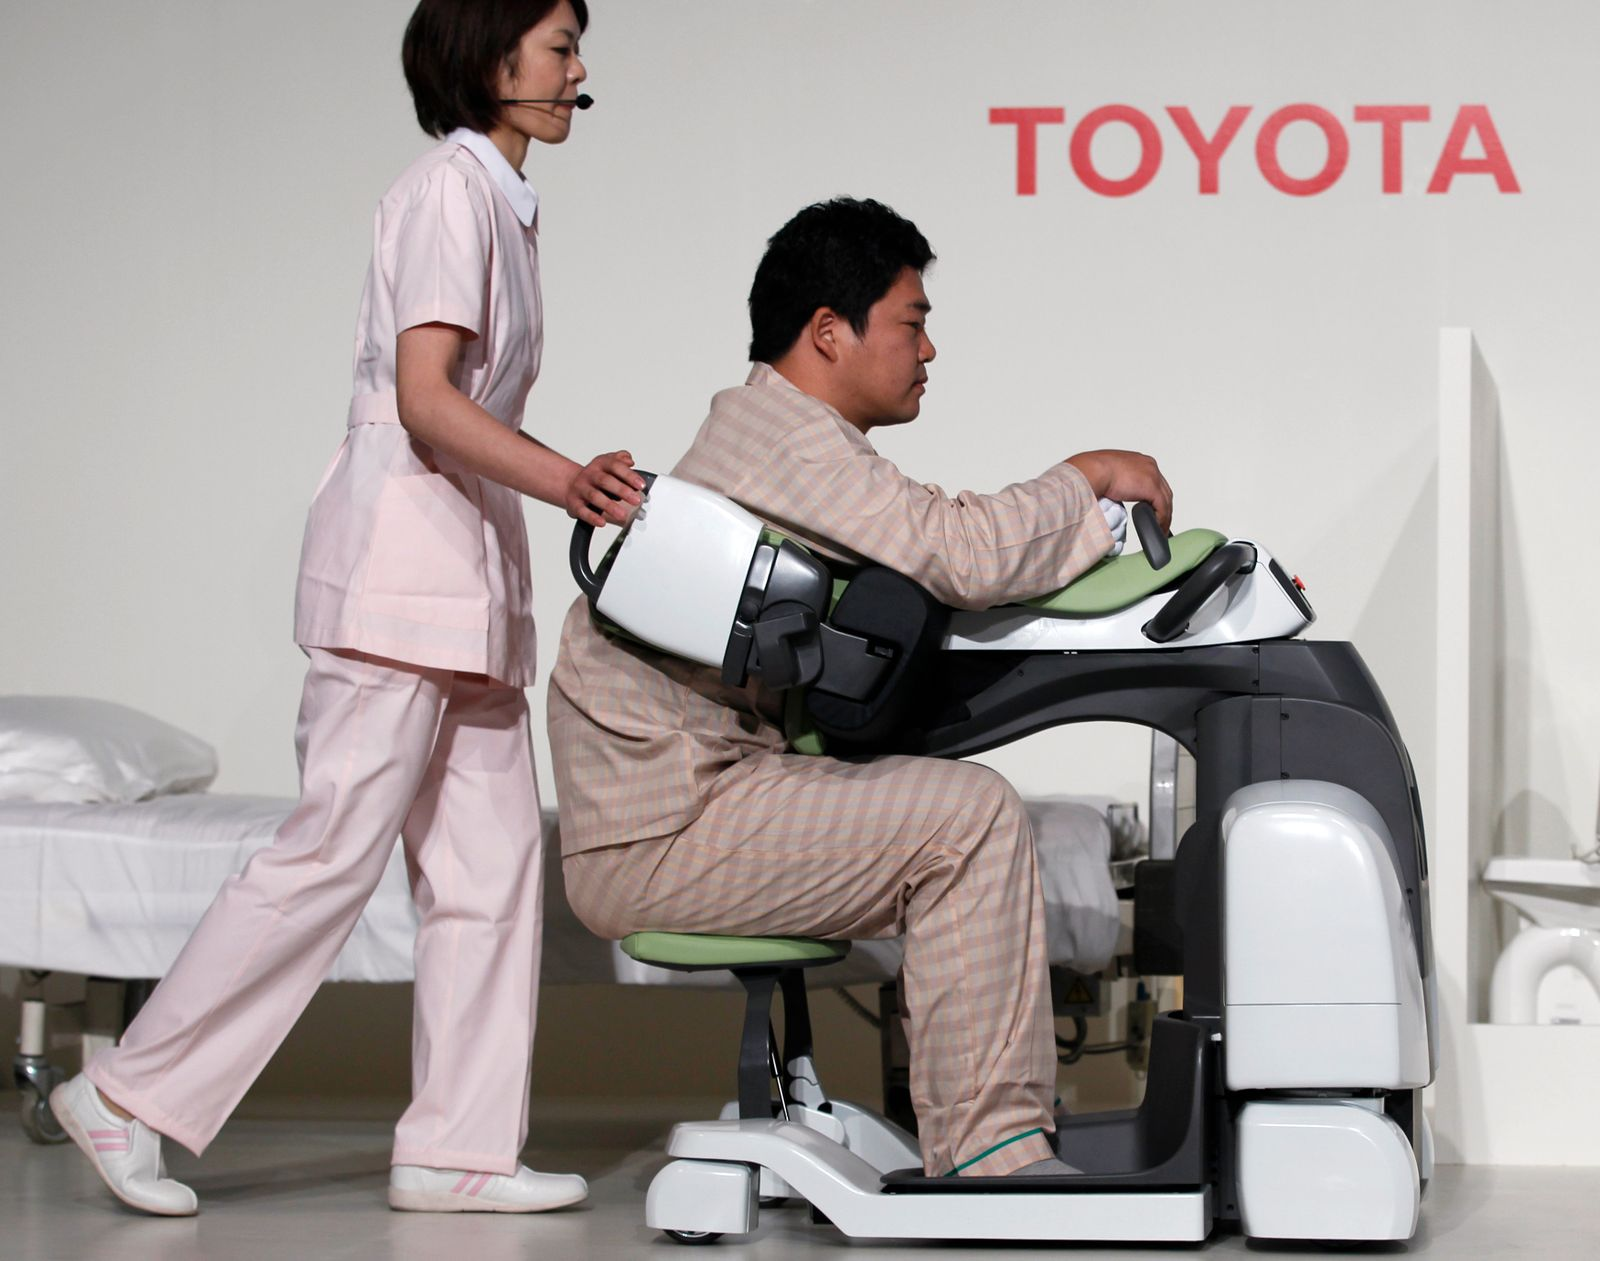 Toyota / Roboter / Assistenzroboter